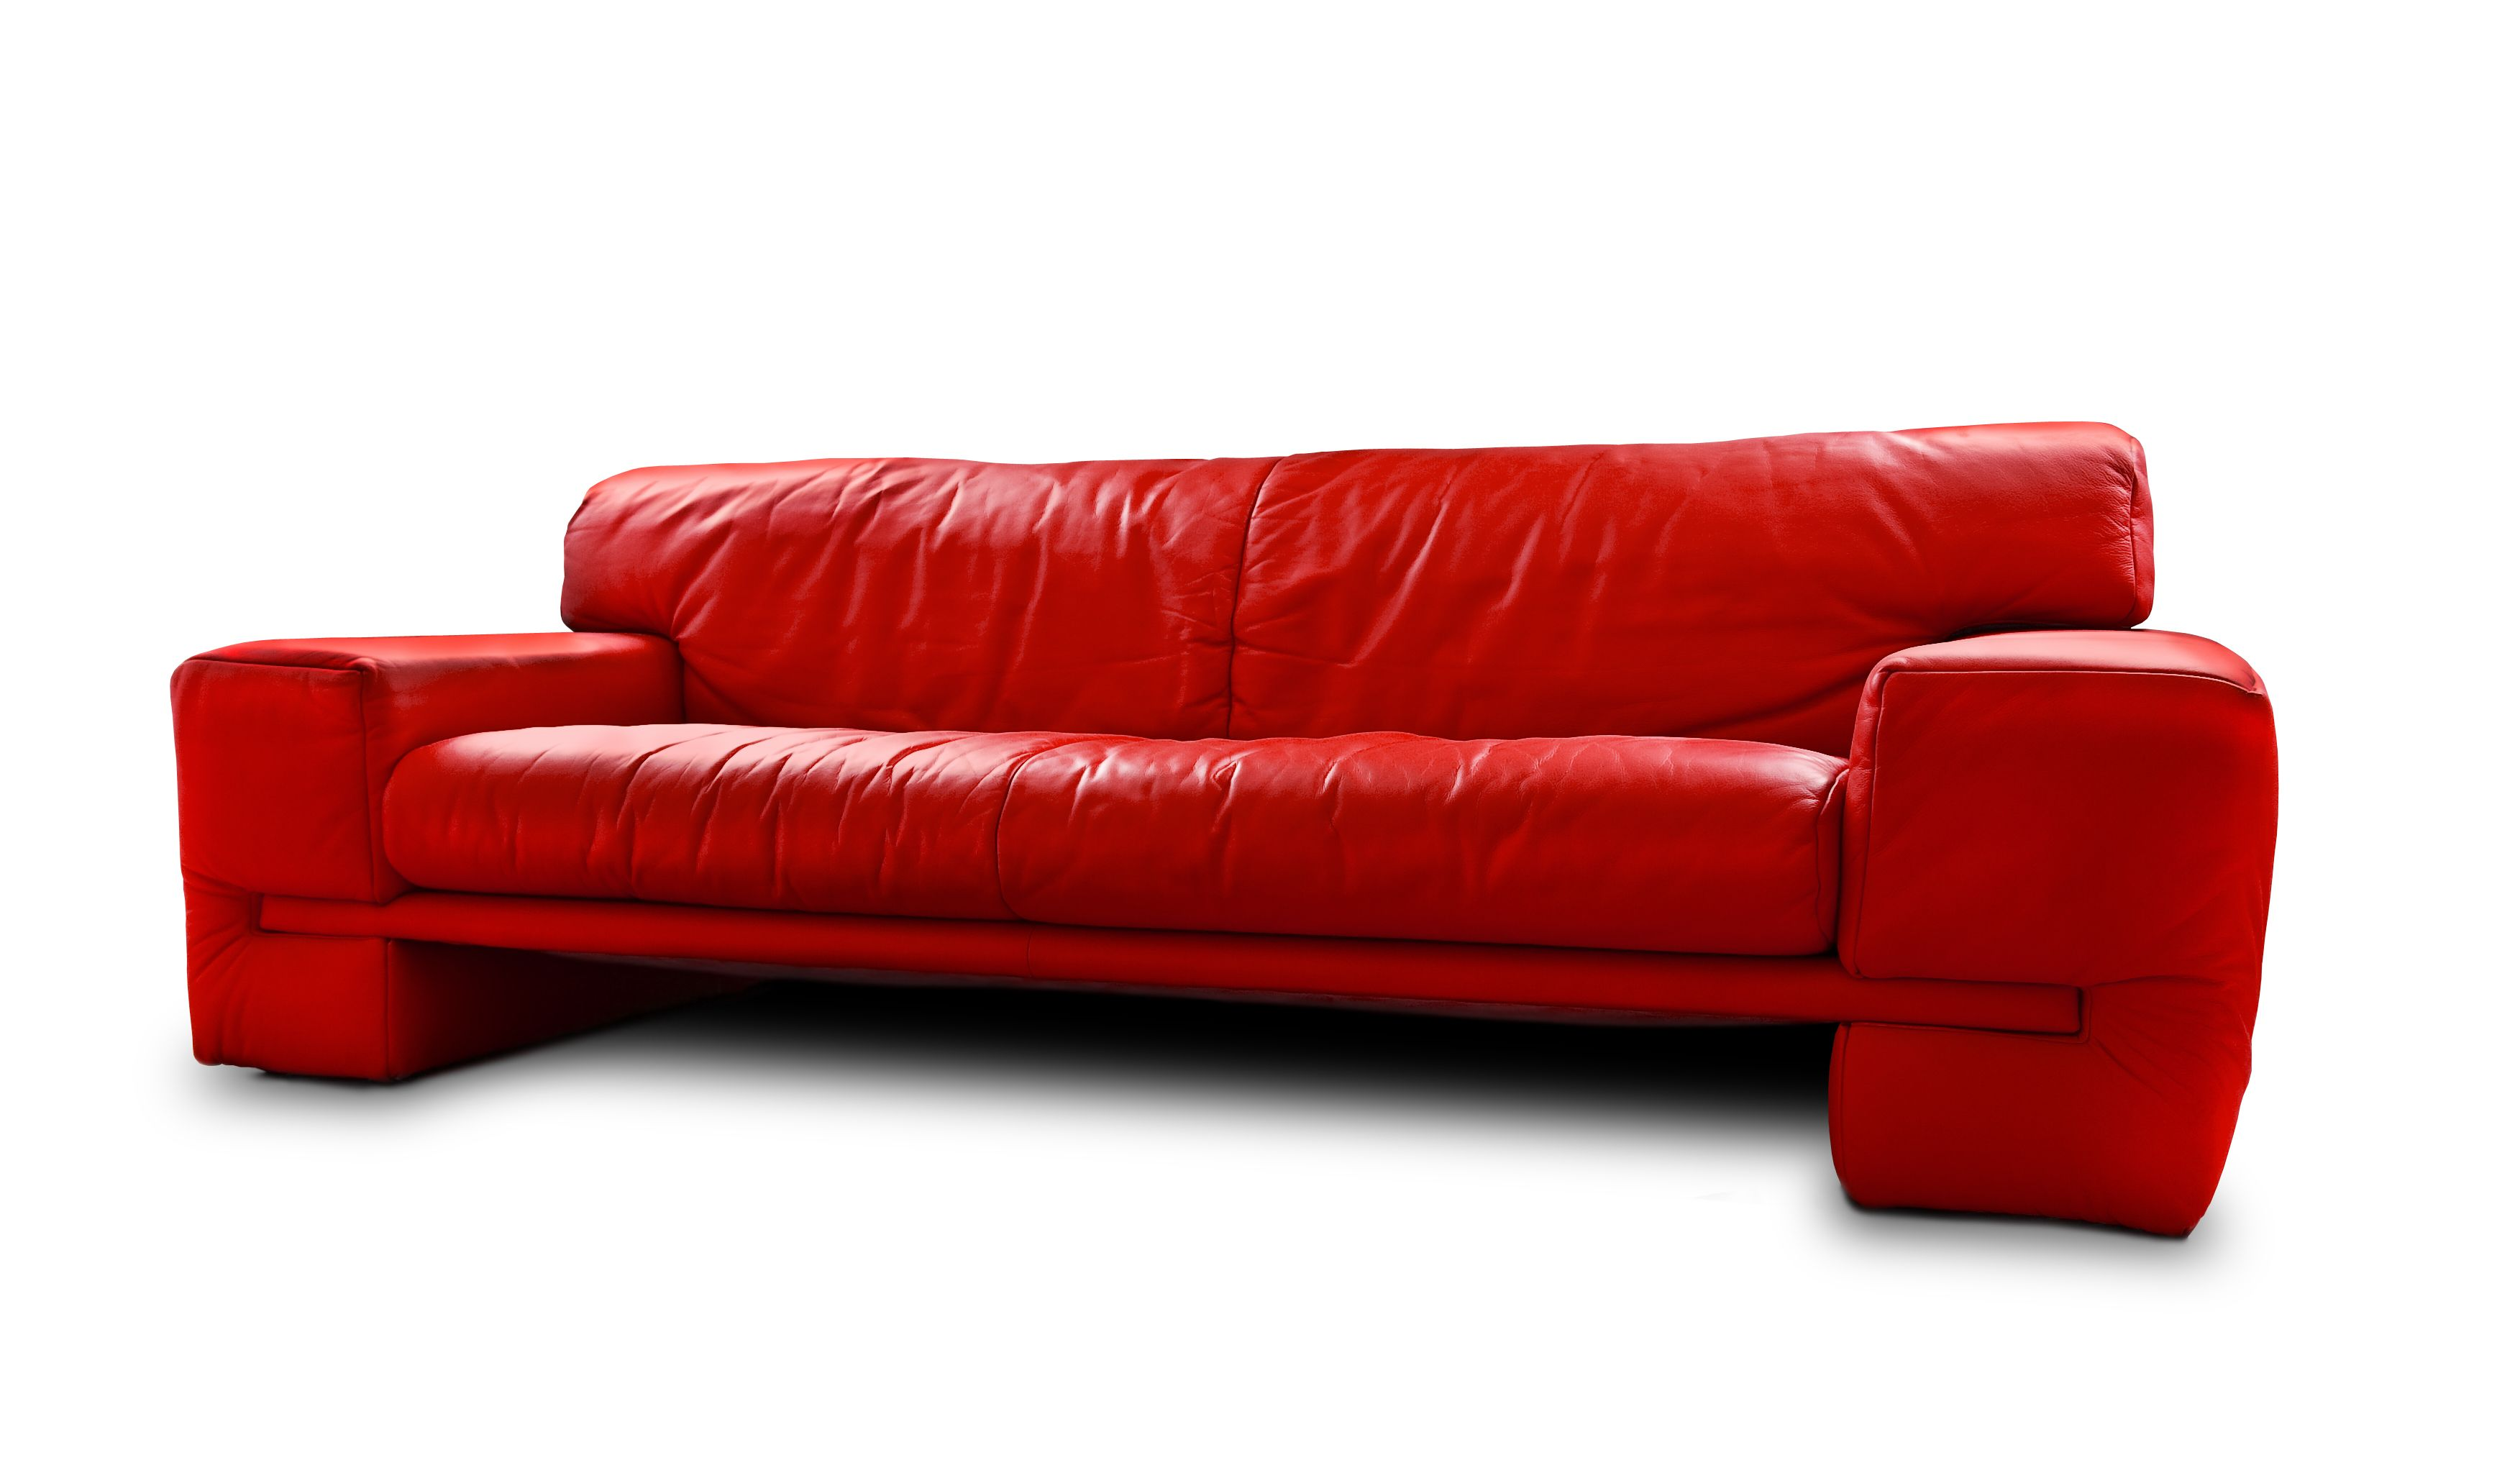 poundex furniture a couches sectional and moss red leather sofa couch fabric steal ottoman carmine